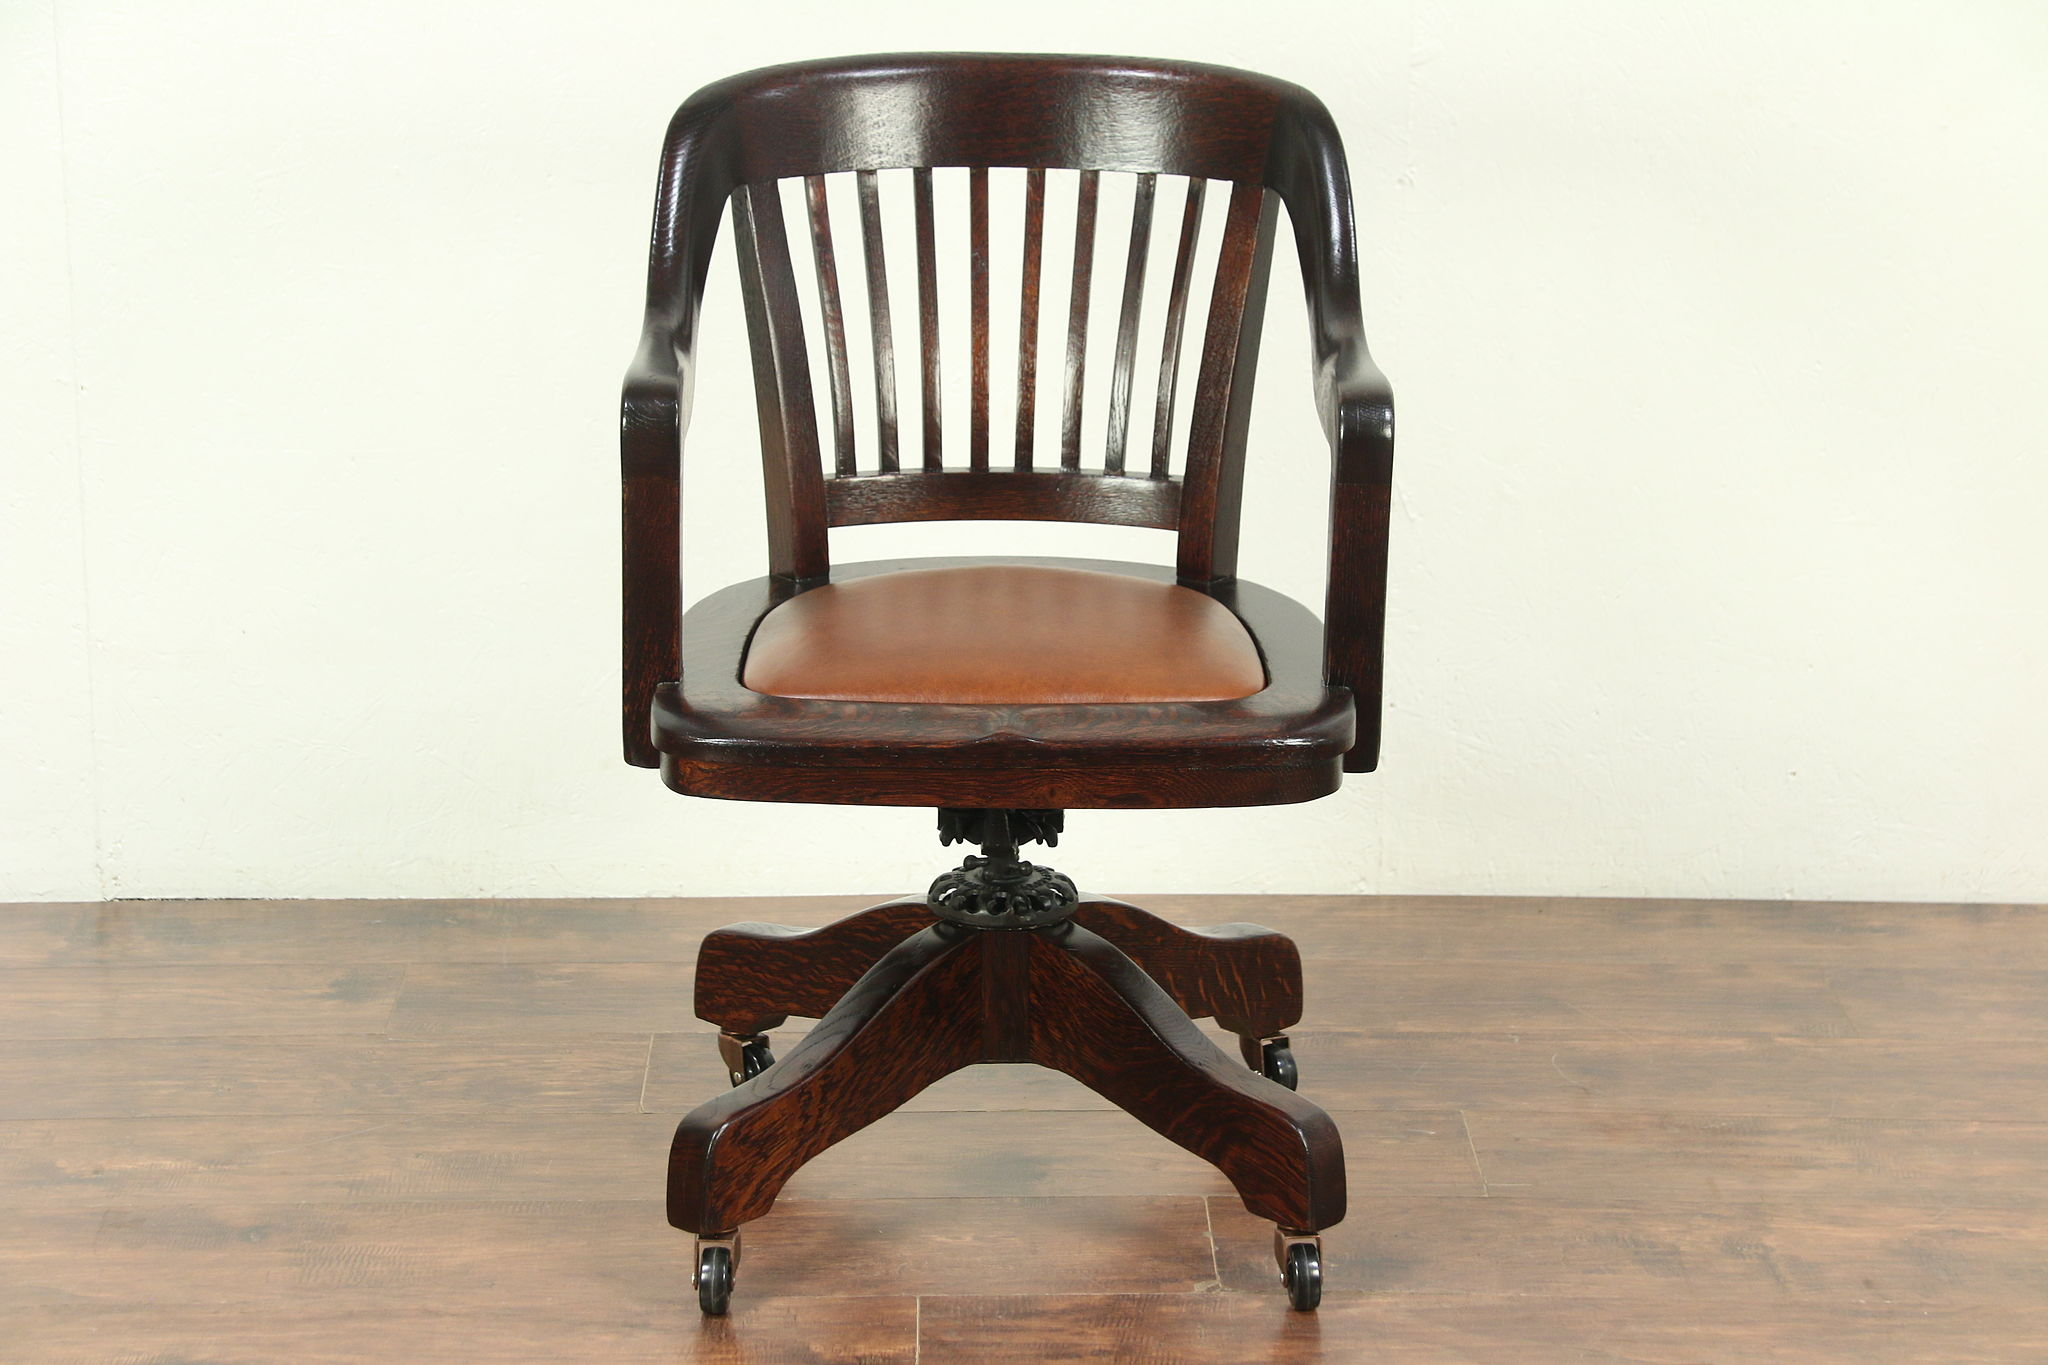 Oak Antique Adjustable Swivel Desk Chair, Signed & Pat 1914,